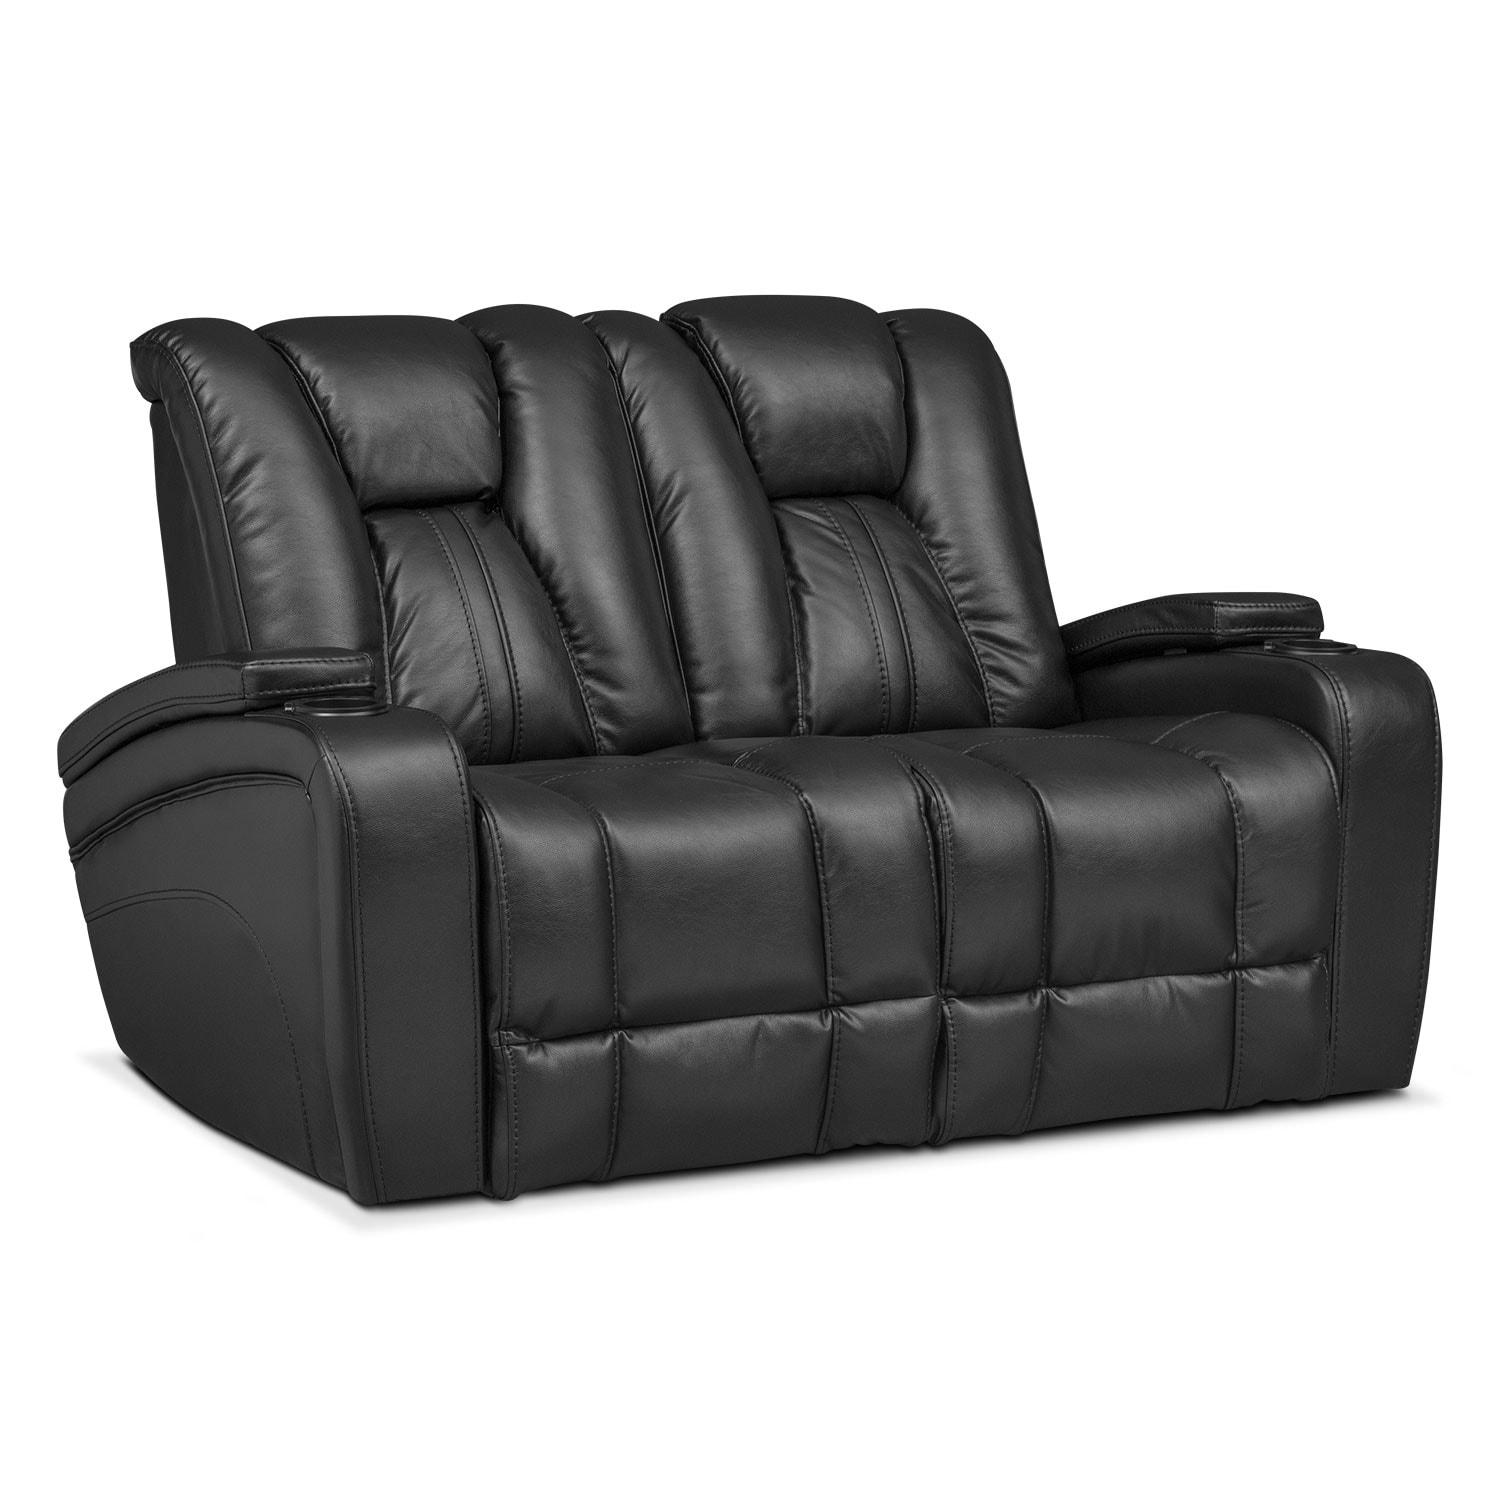 pulsar power reclining sofa power reclining loveseat and power recliner set black by one80 - Black Leather Loveseat